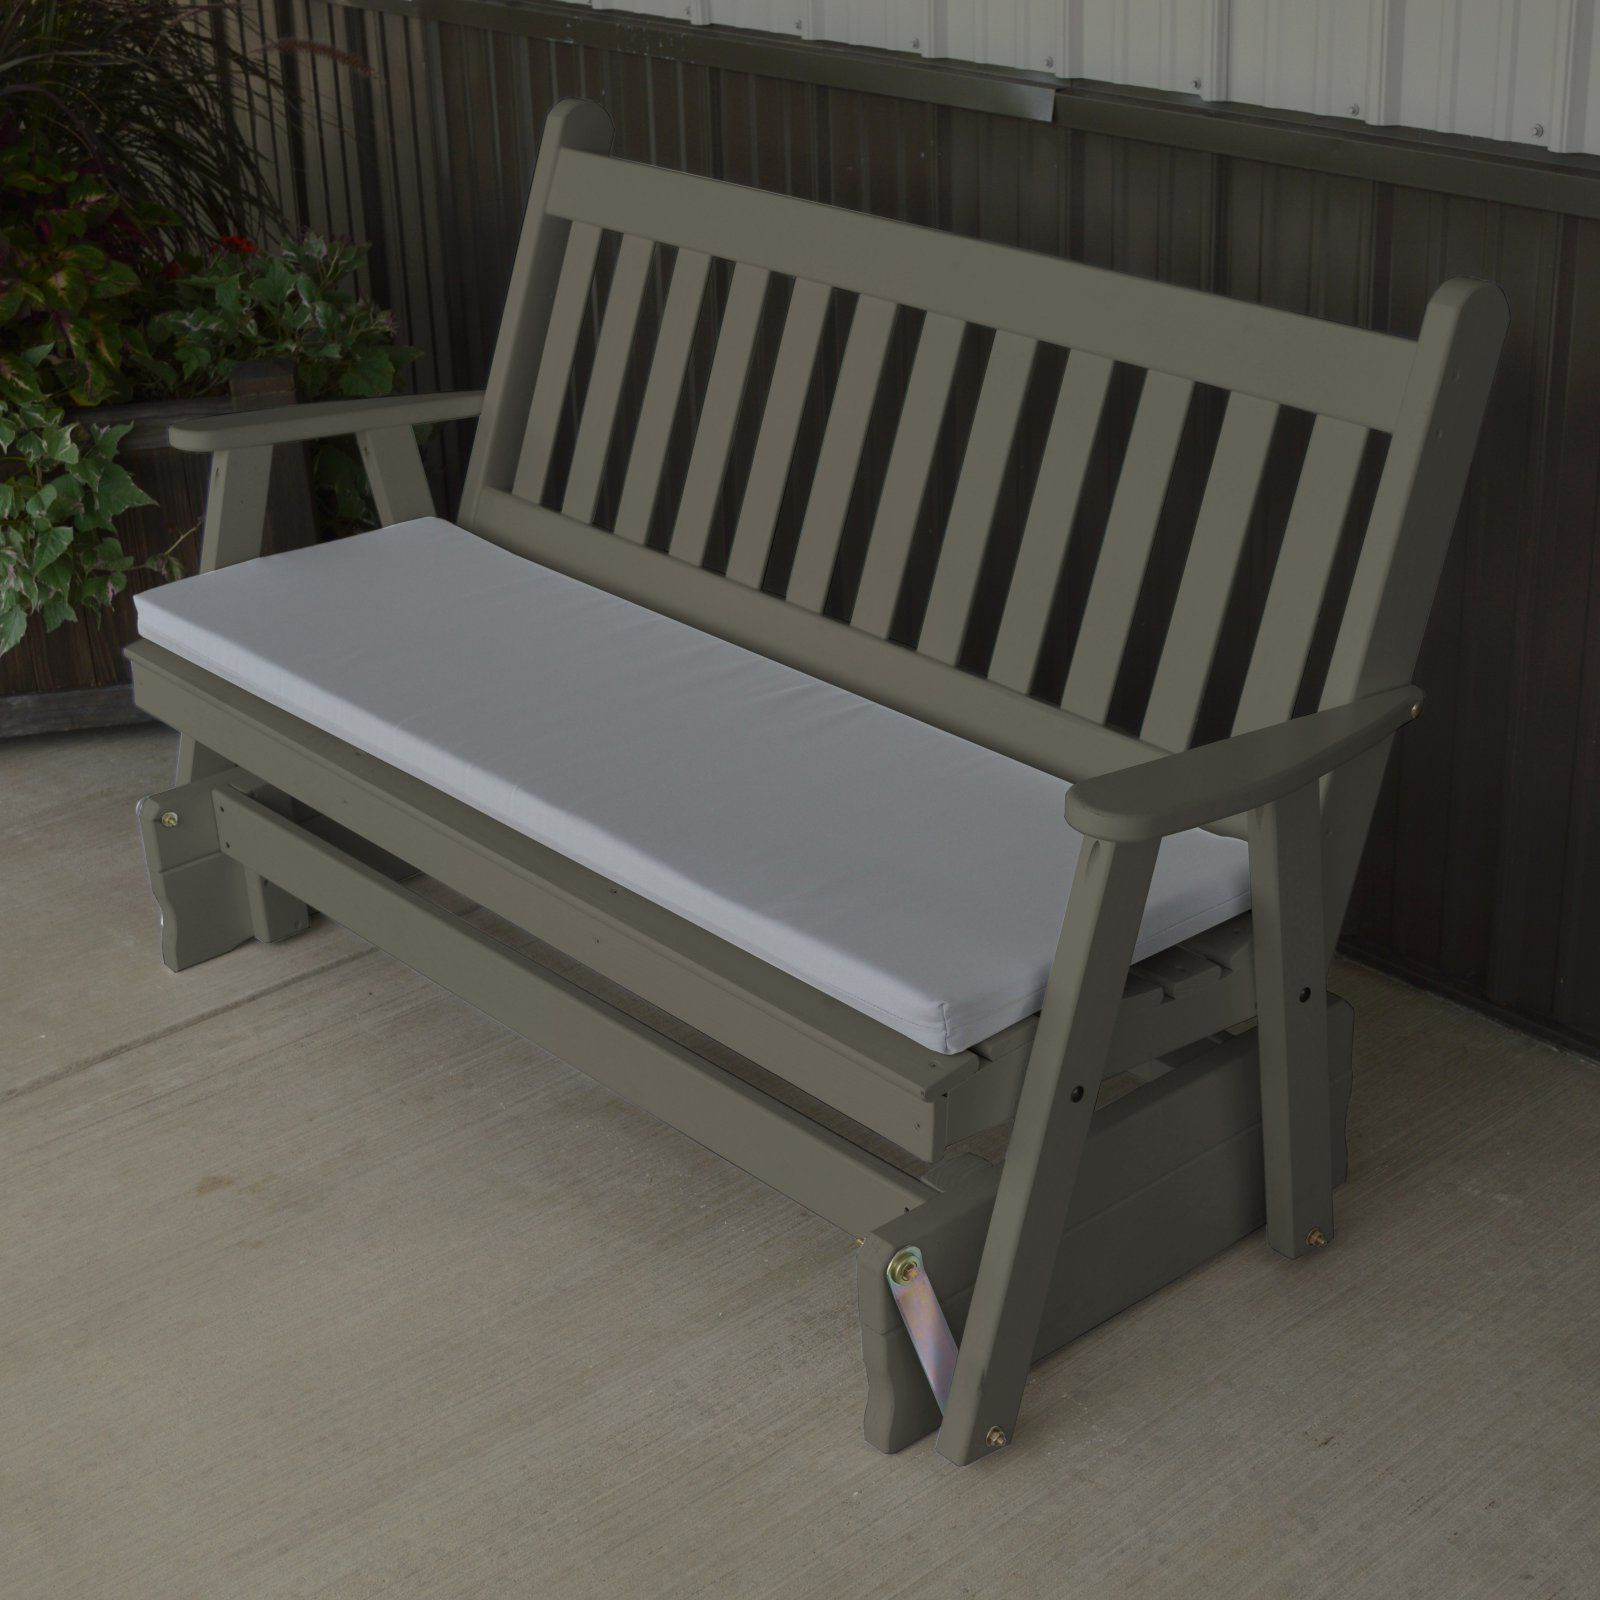 2019 Traditional English Glider Benches Throughout A & L Furniture Yellow Pine Traditional English Outdoor (View 2 of 34)